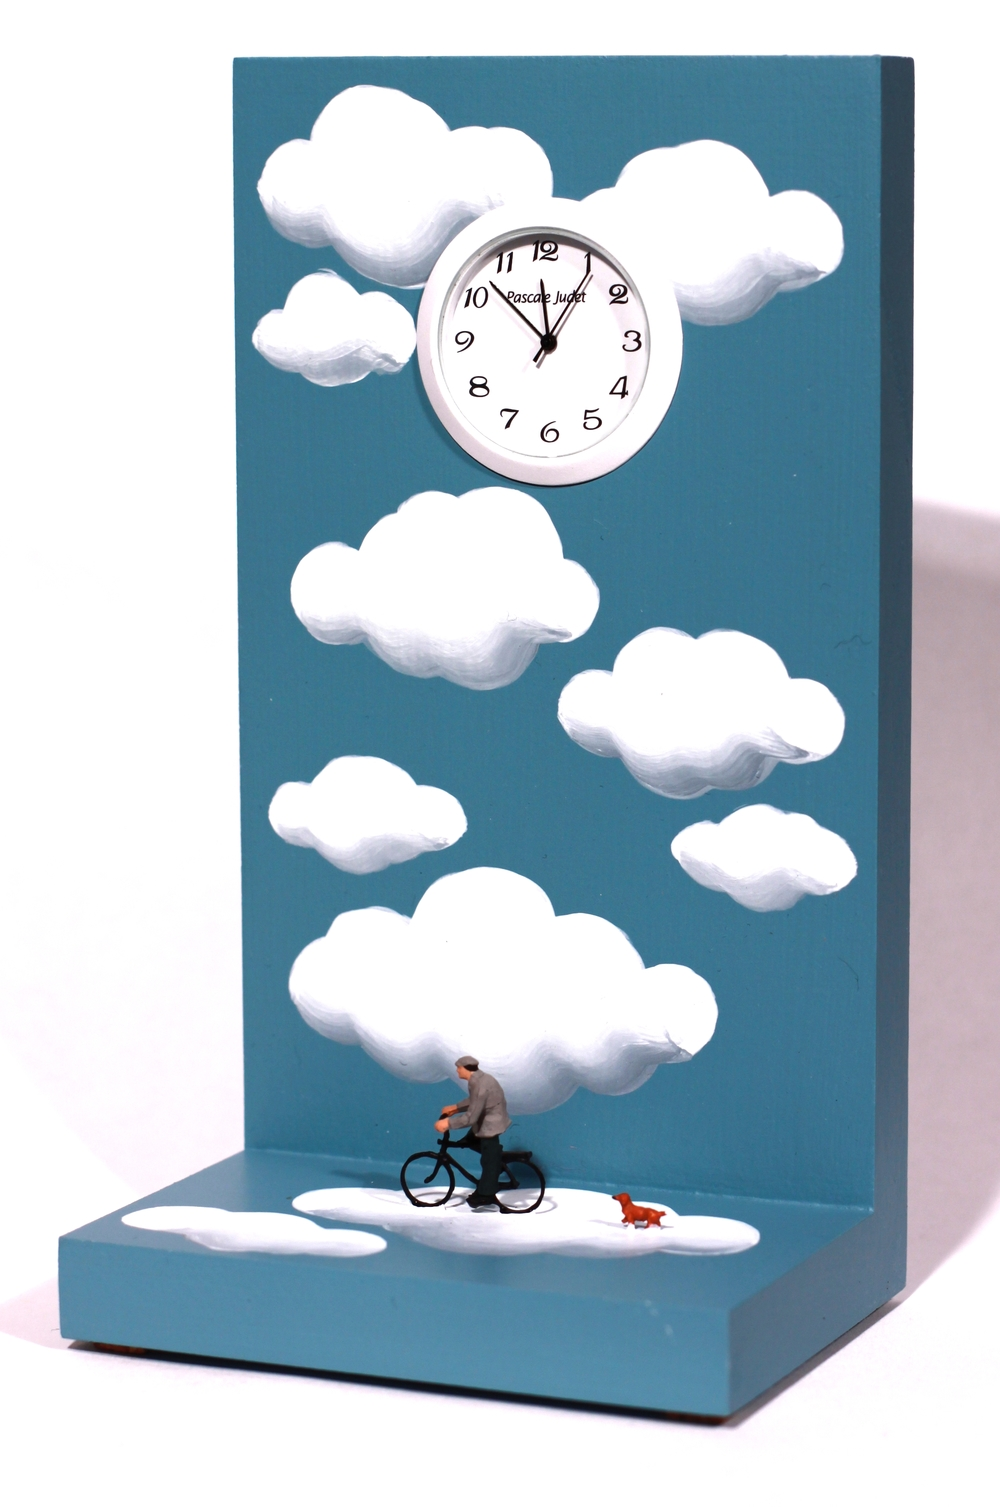 167 - Cloud Bike